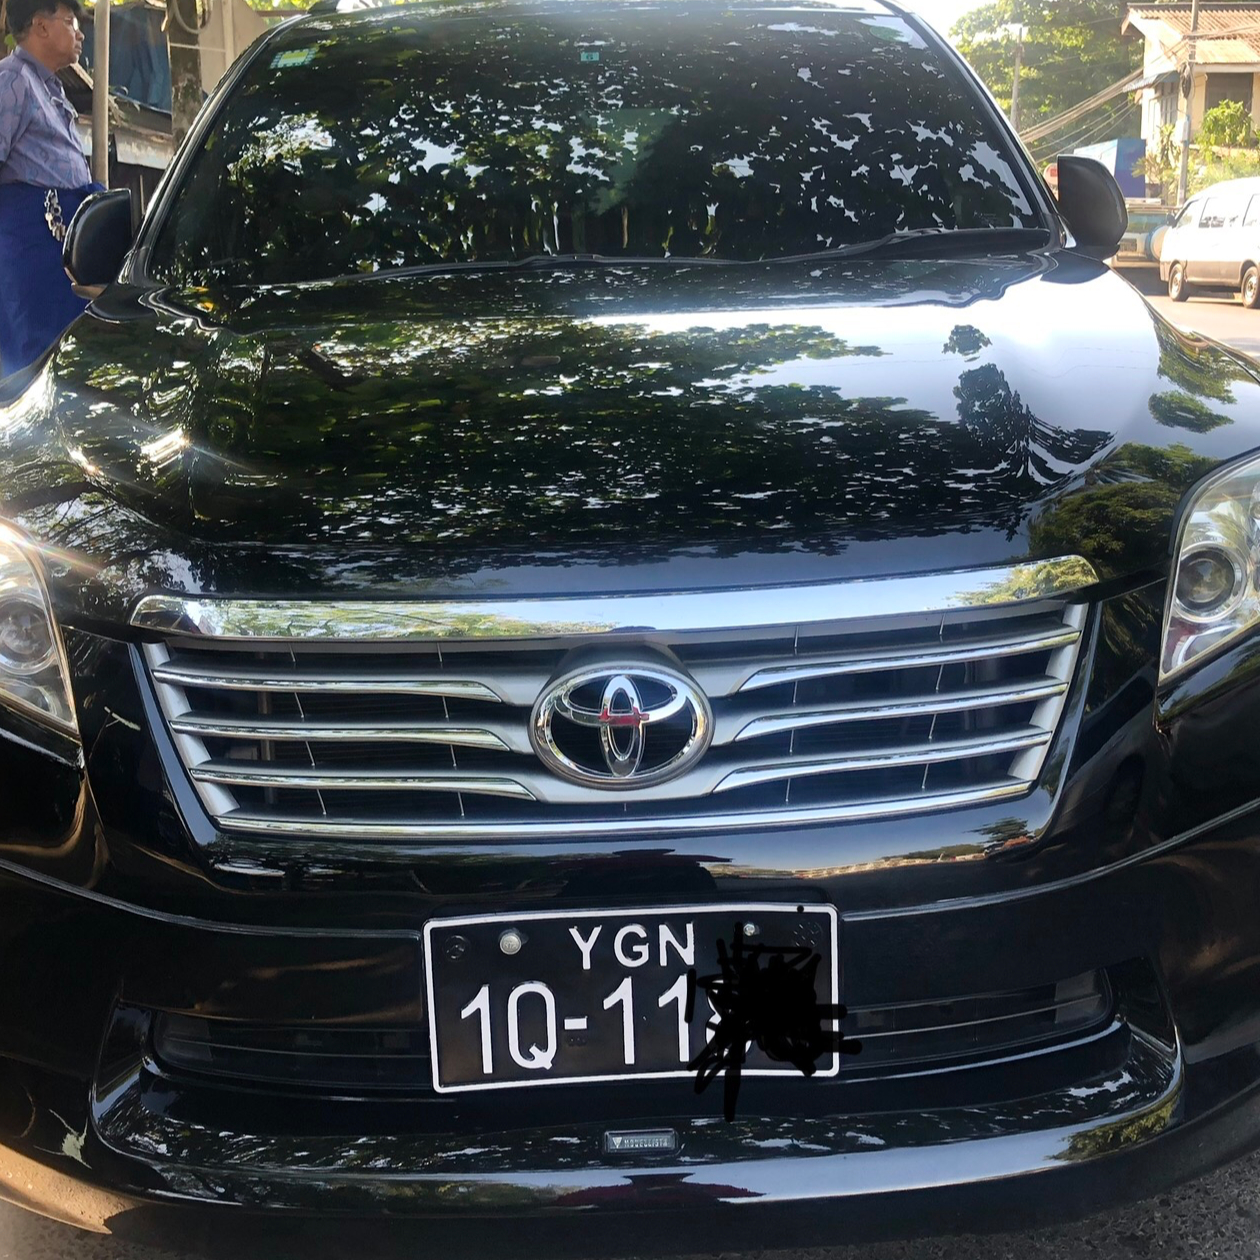 Toyota Vanguard 2011  Image, 4x4/SUV classified, Myanmar marketplace, Myanmarkt